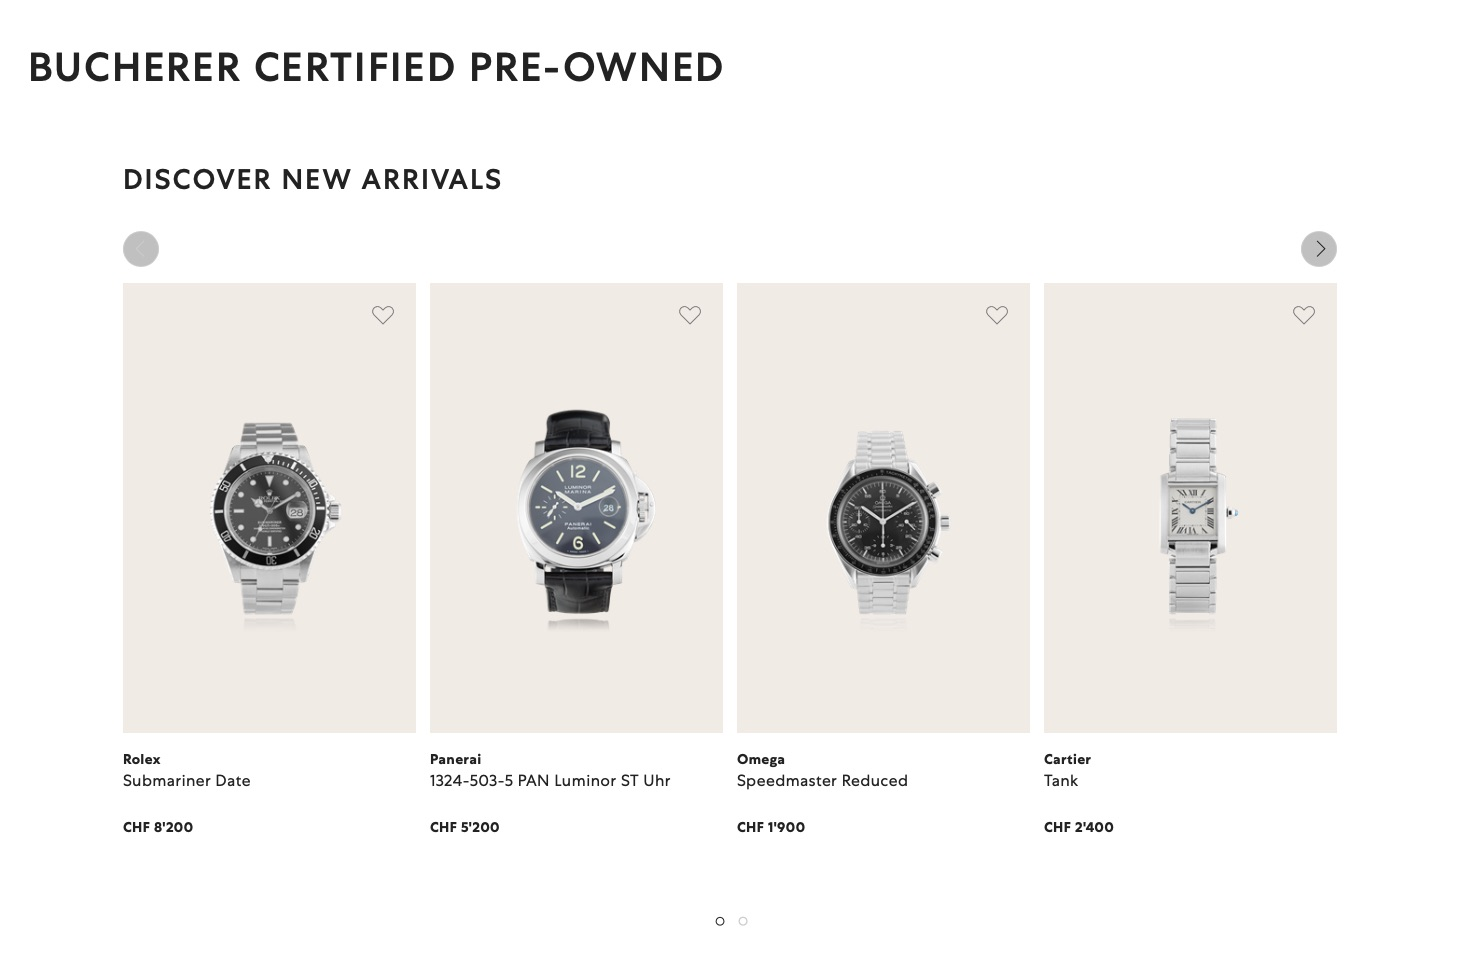 Certified Pre Owned >> Watch Retailer Bucherer Enters The Certified Pre Owned Market